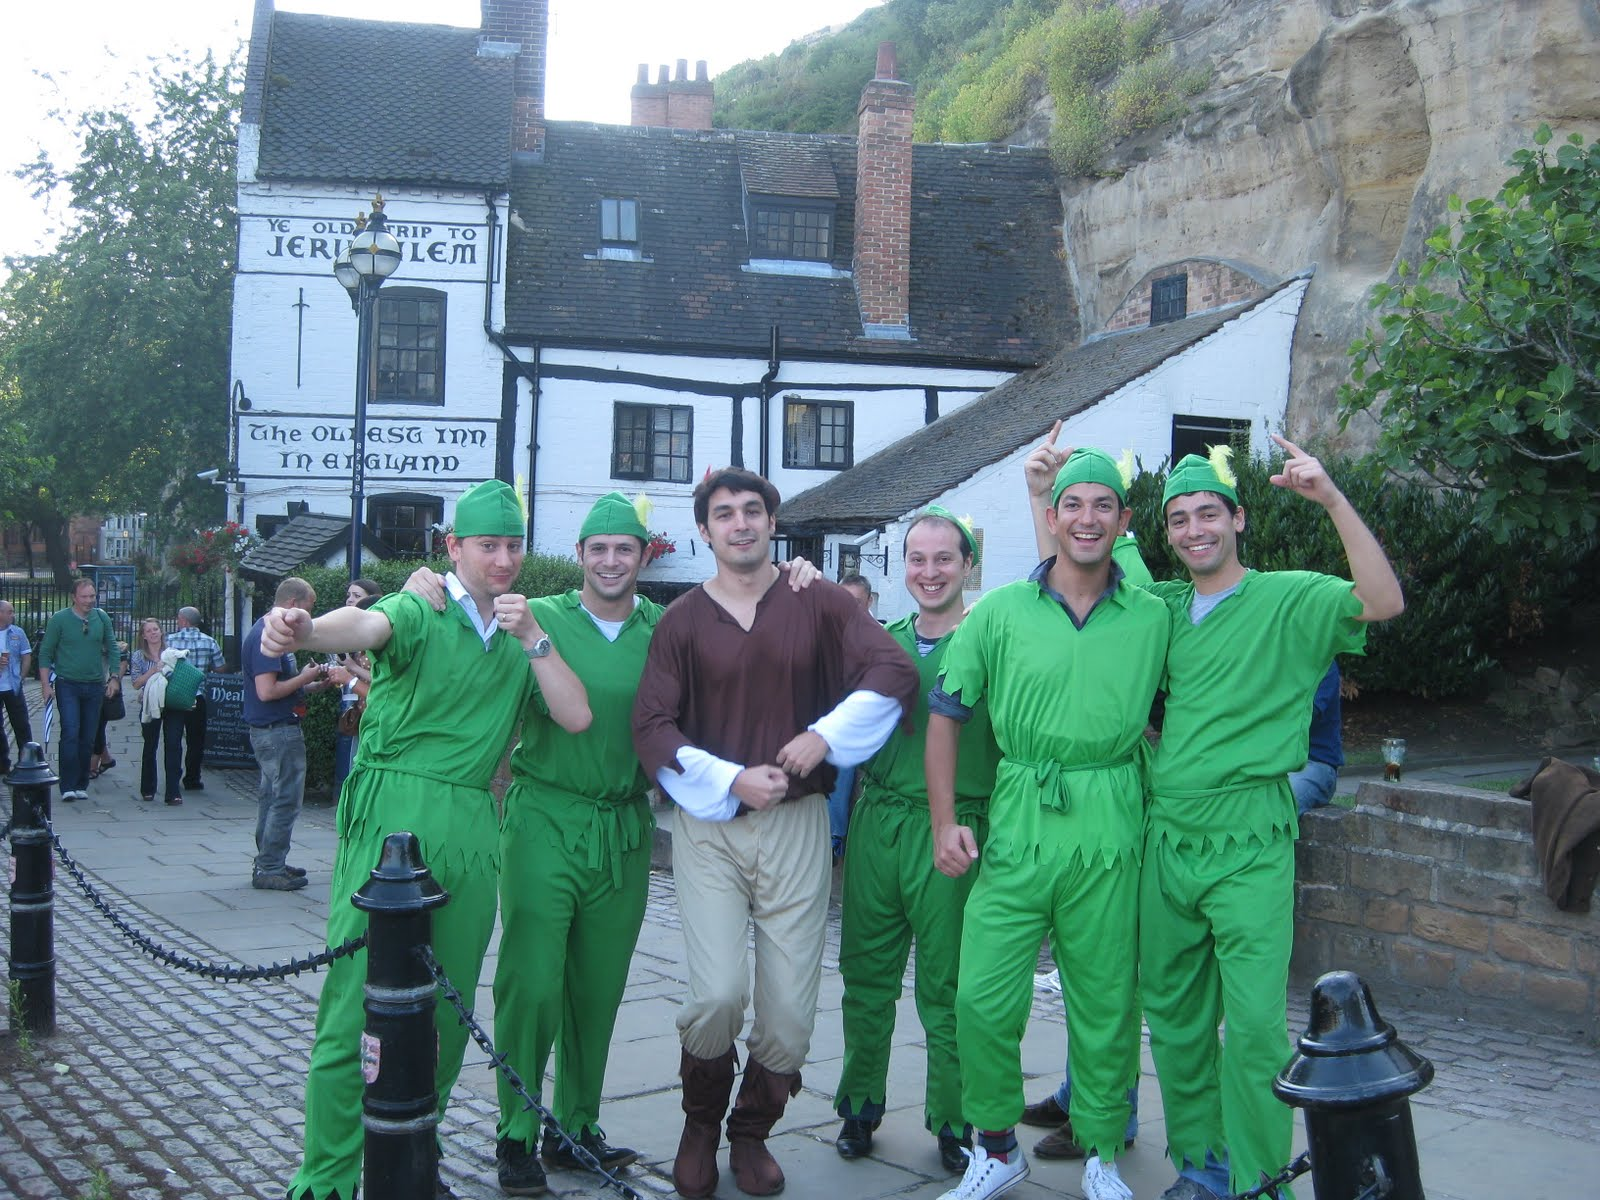 Old Fashioned Stag Party Fancy Dress Ideas Gallery - All Wedding ...